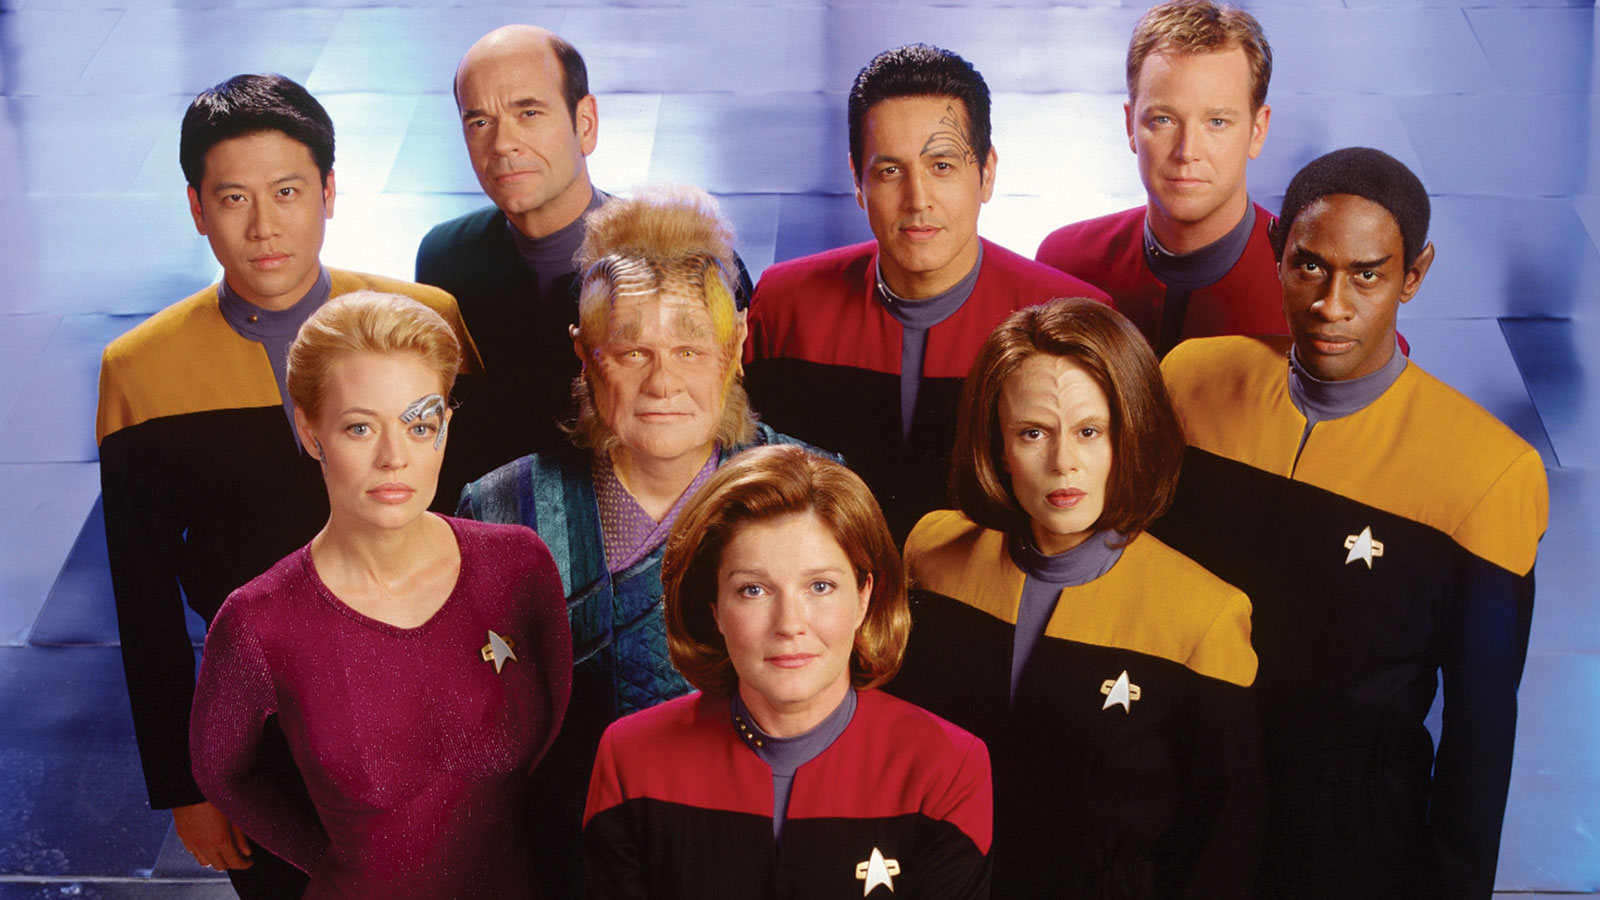 Star Trek: Voyager Documentary Surpasses $1.2M With Record-Breaking Crowdfunding Campaign